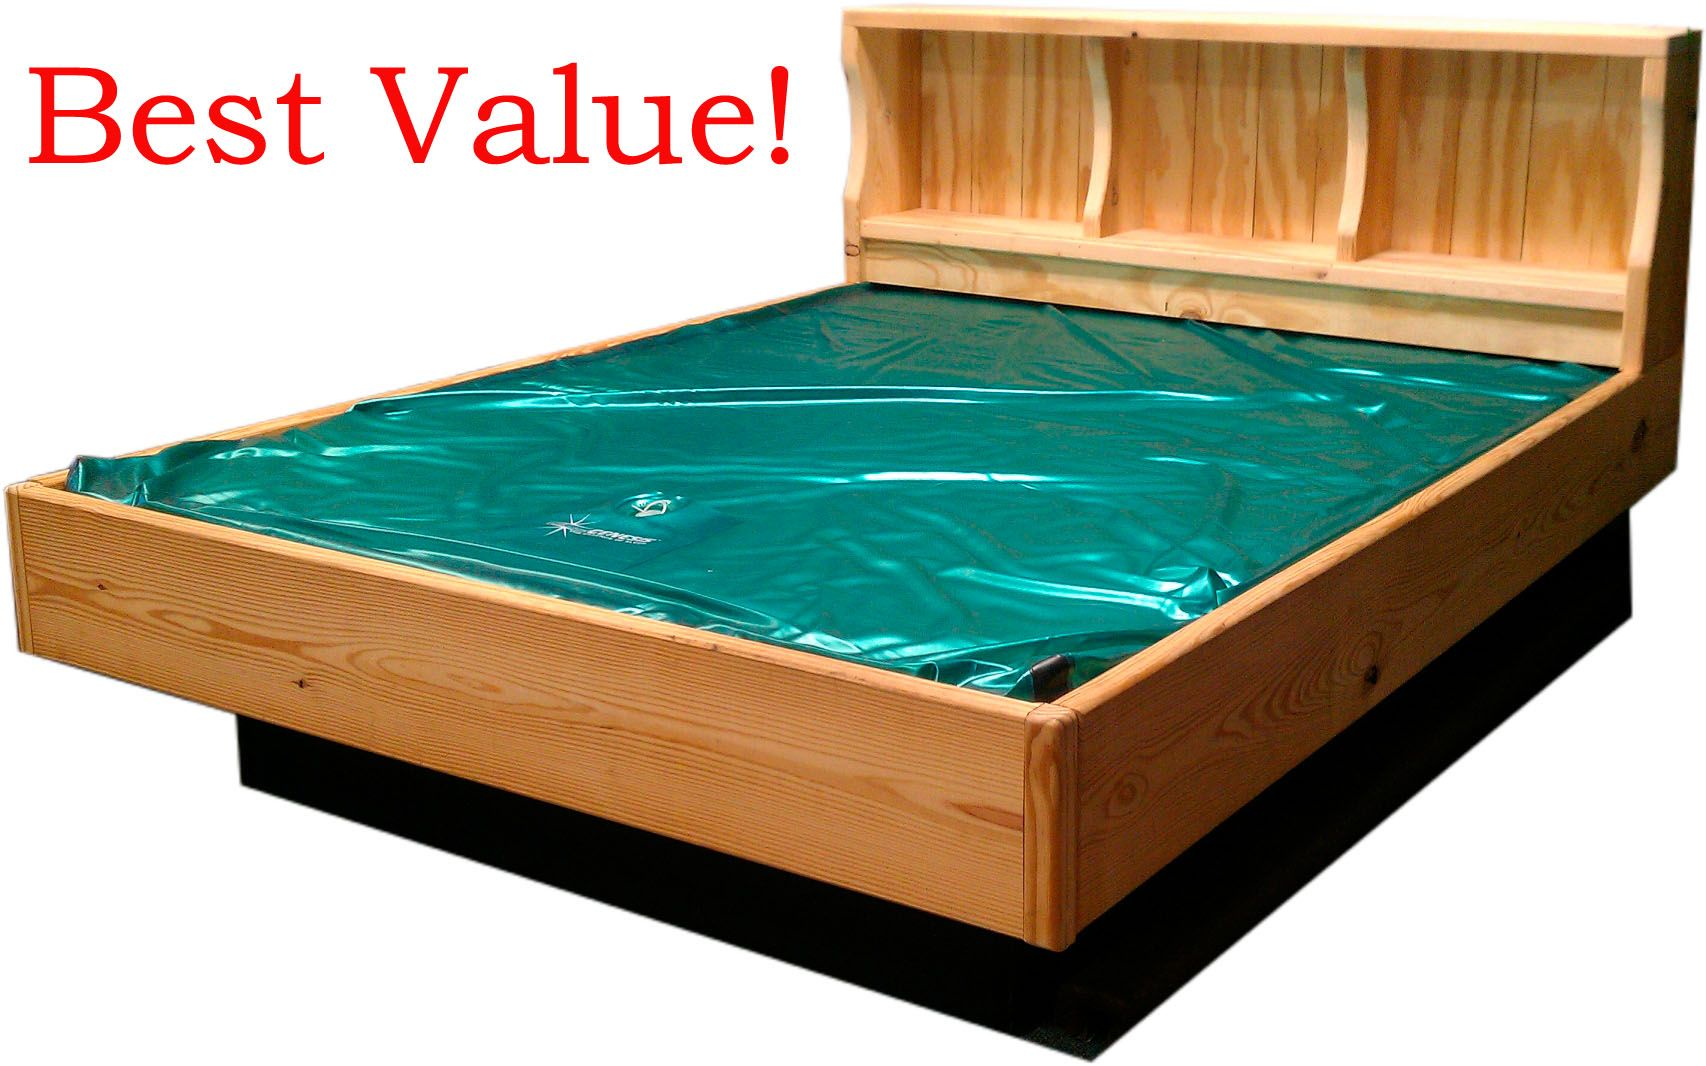 Our All Natural Wood Bookcase Hardside Waterbed Check It Out Http Waterbedstoday Com Naturalwoodbookcase Html Or Water Bed Wood Bookcase Waterbed Frame